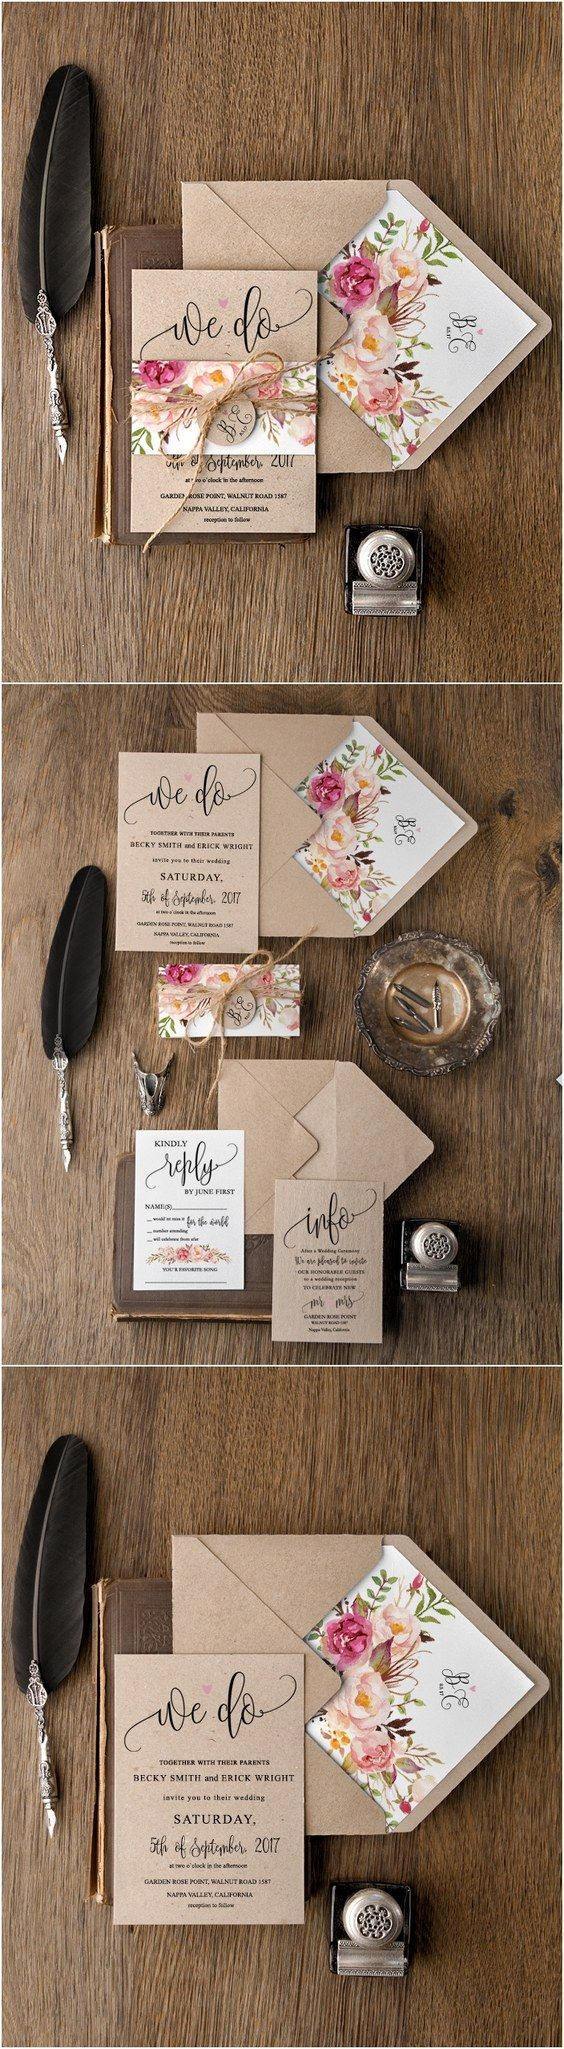 wedding invitations wedding stationery Rustic country peach and pink kraft paper wedding invitations rusticwedding countrywedding weddinginvites